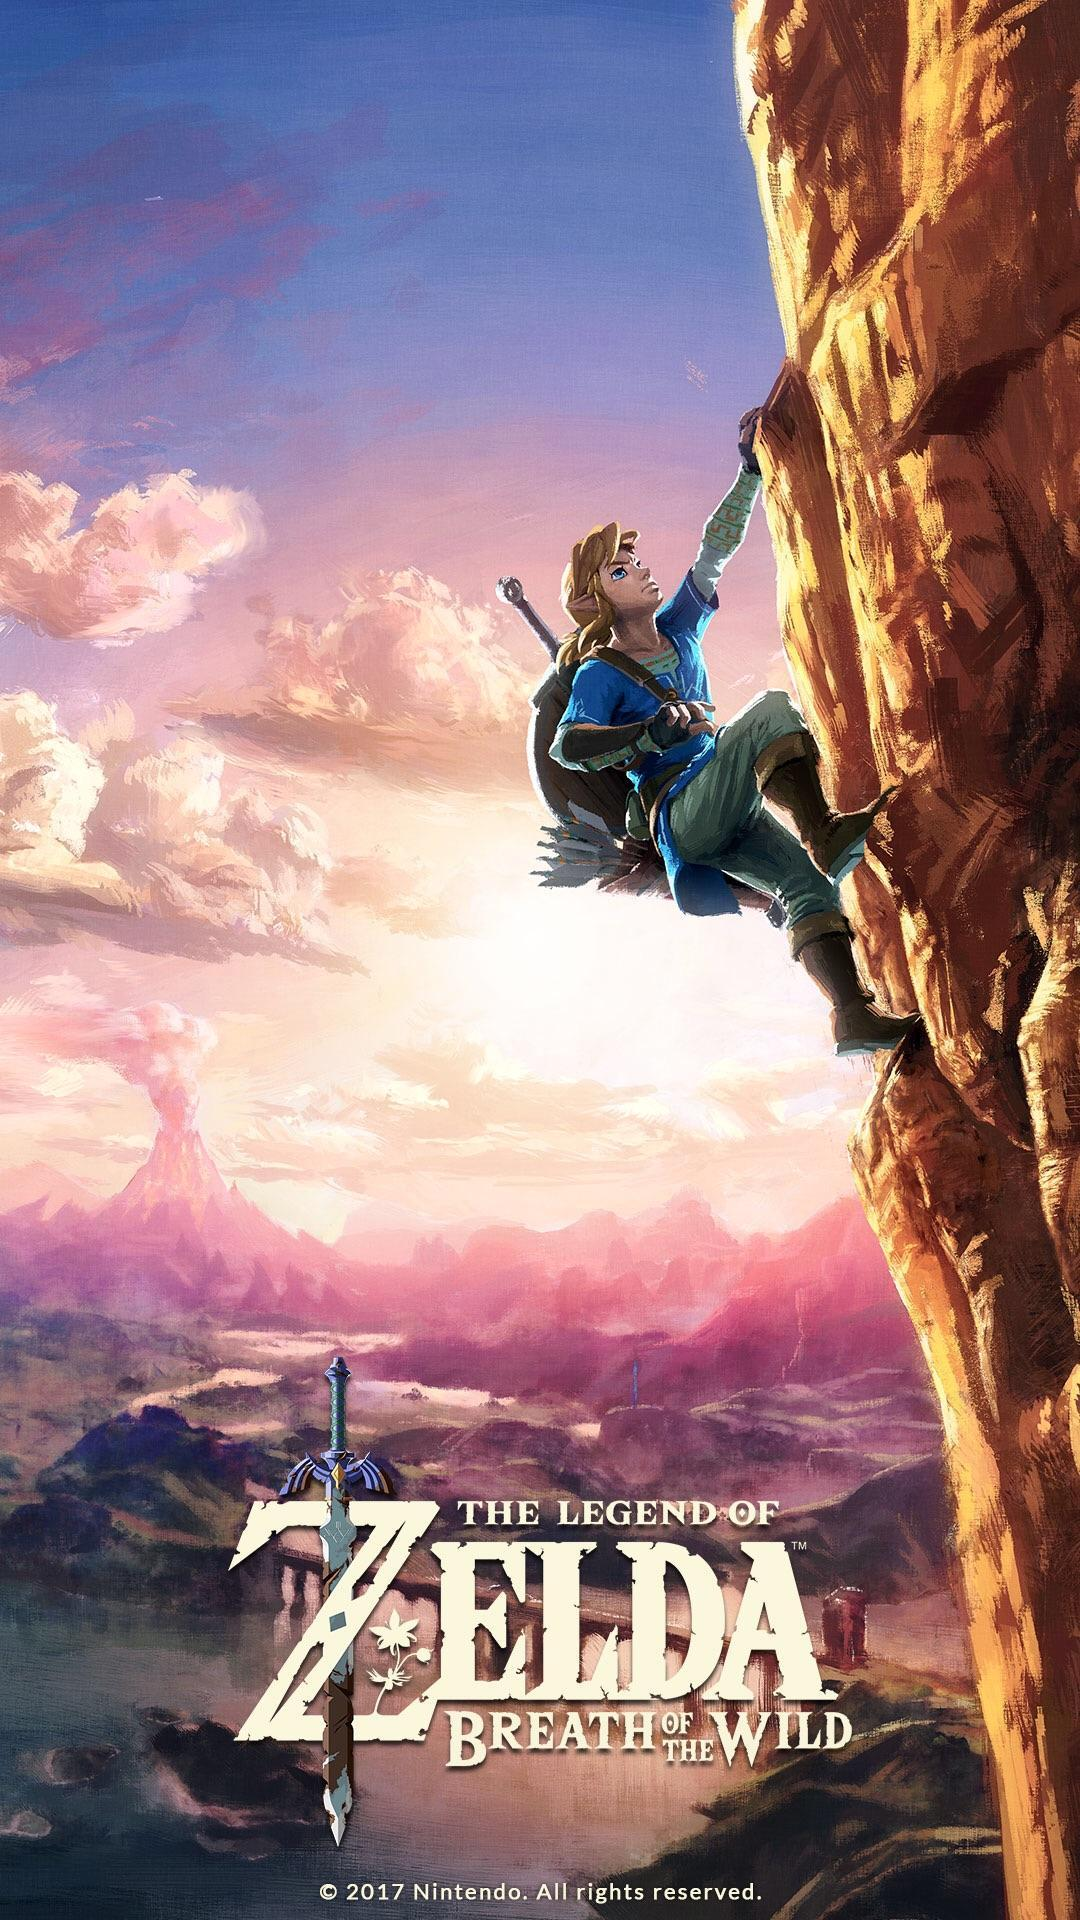 Botw Wallpaper Phone : wallpaper, phone, Phone, Wallpapers, Wallpaper